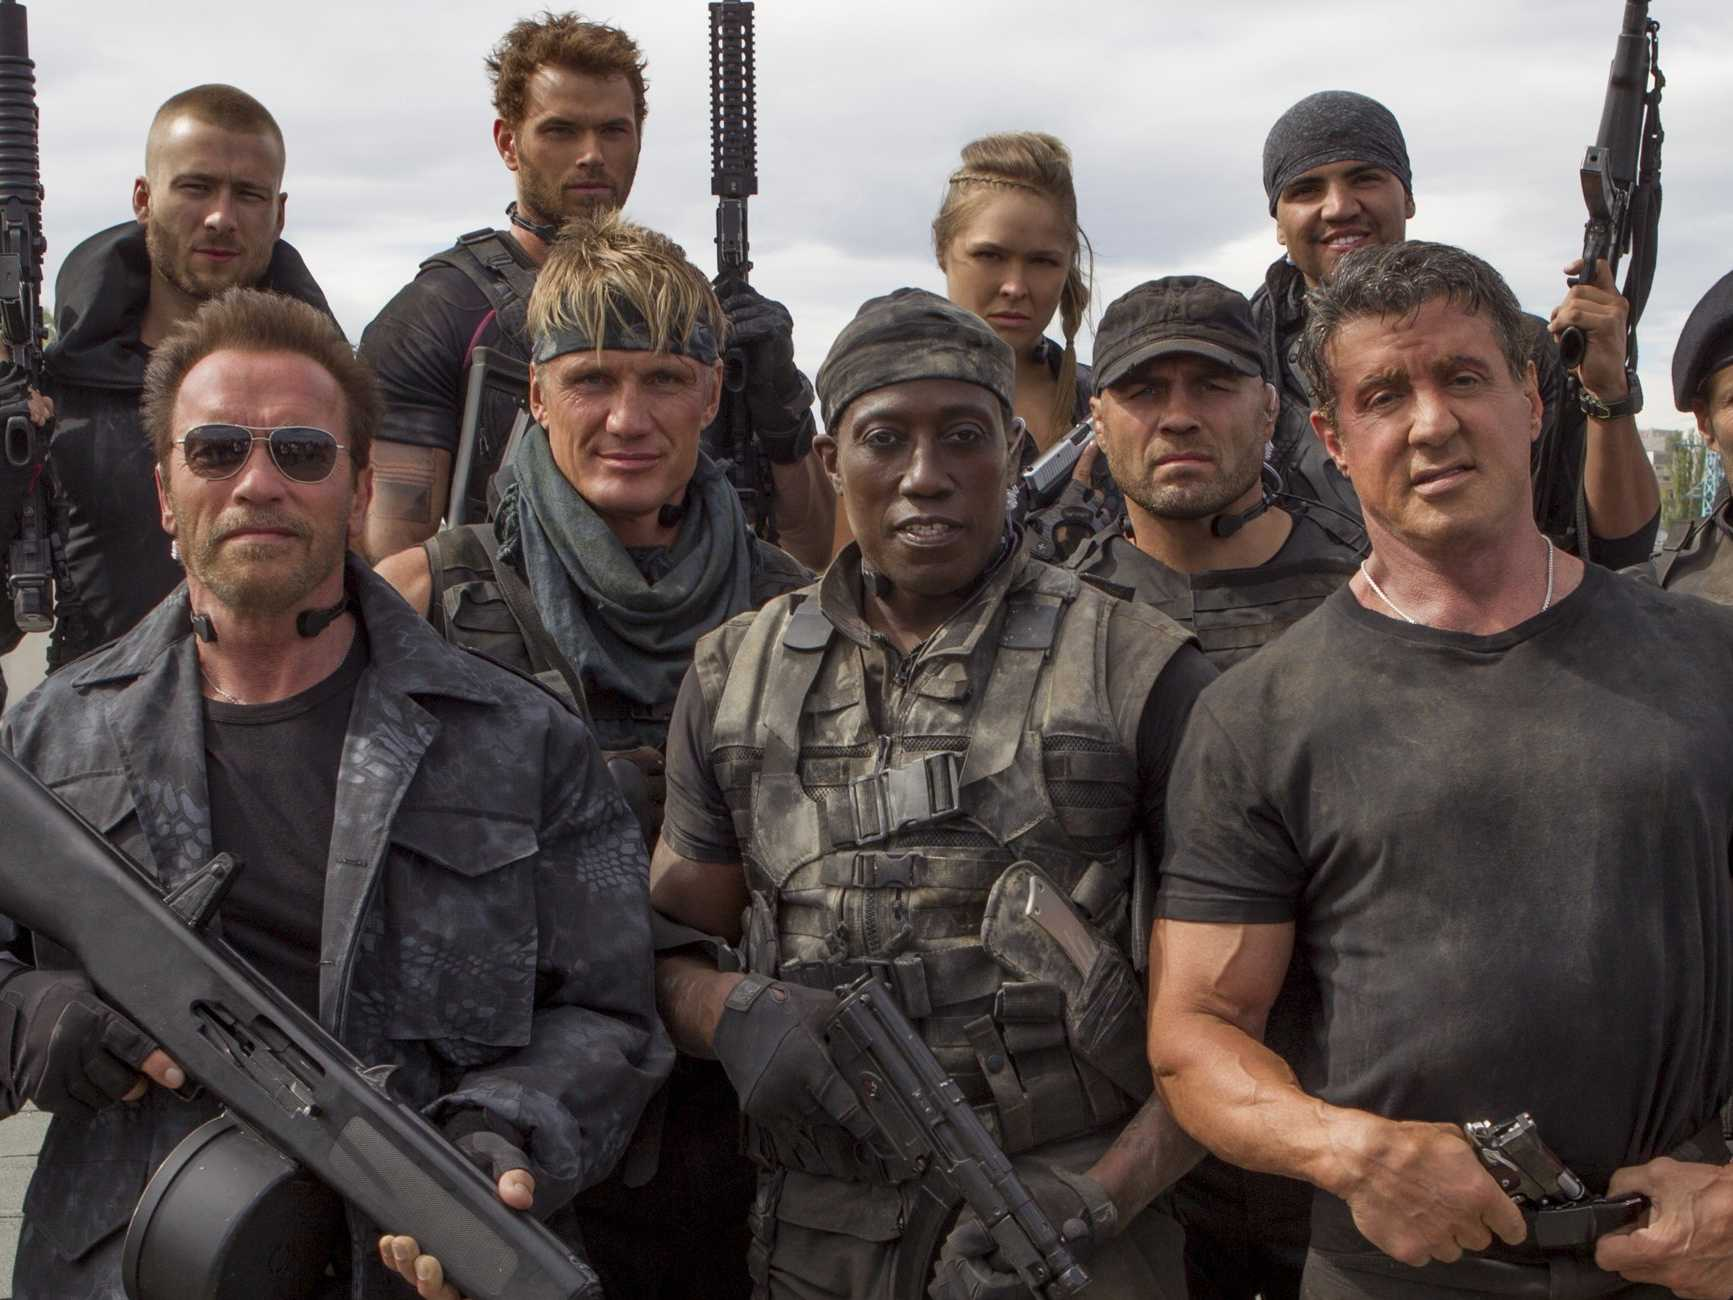 boom reviews - The Expendables 3